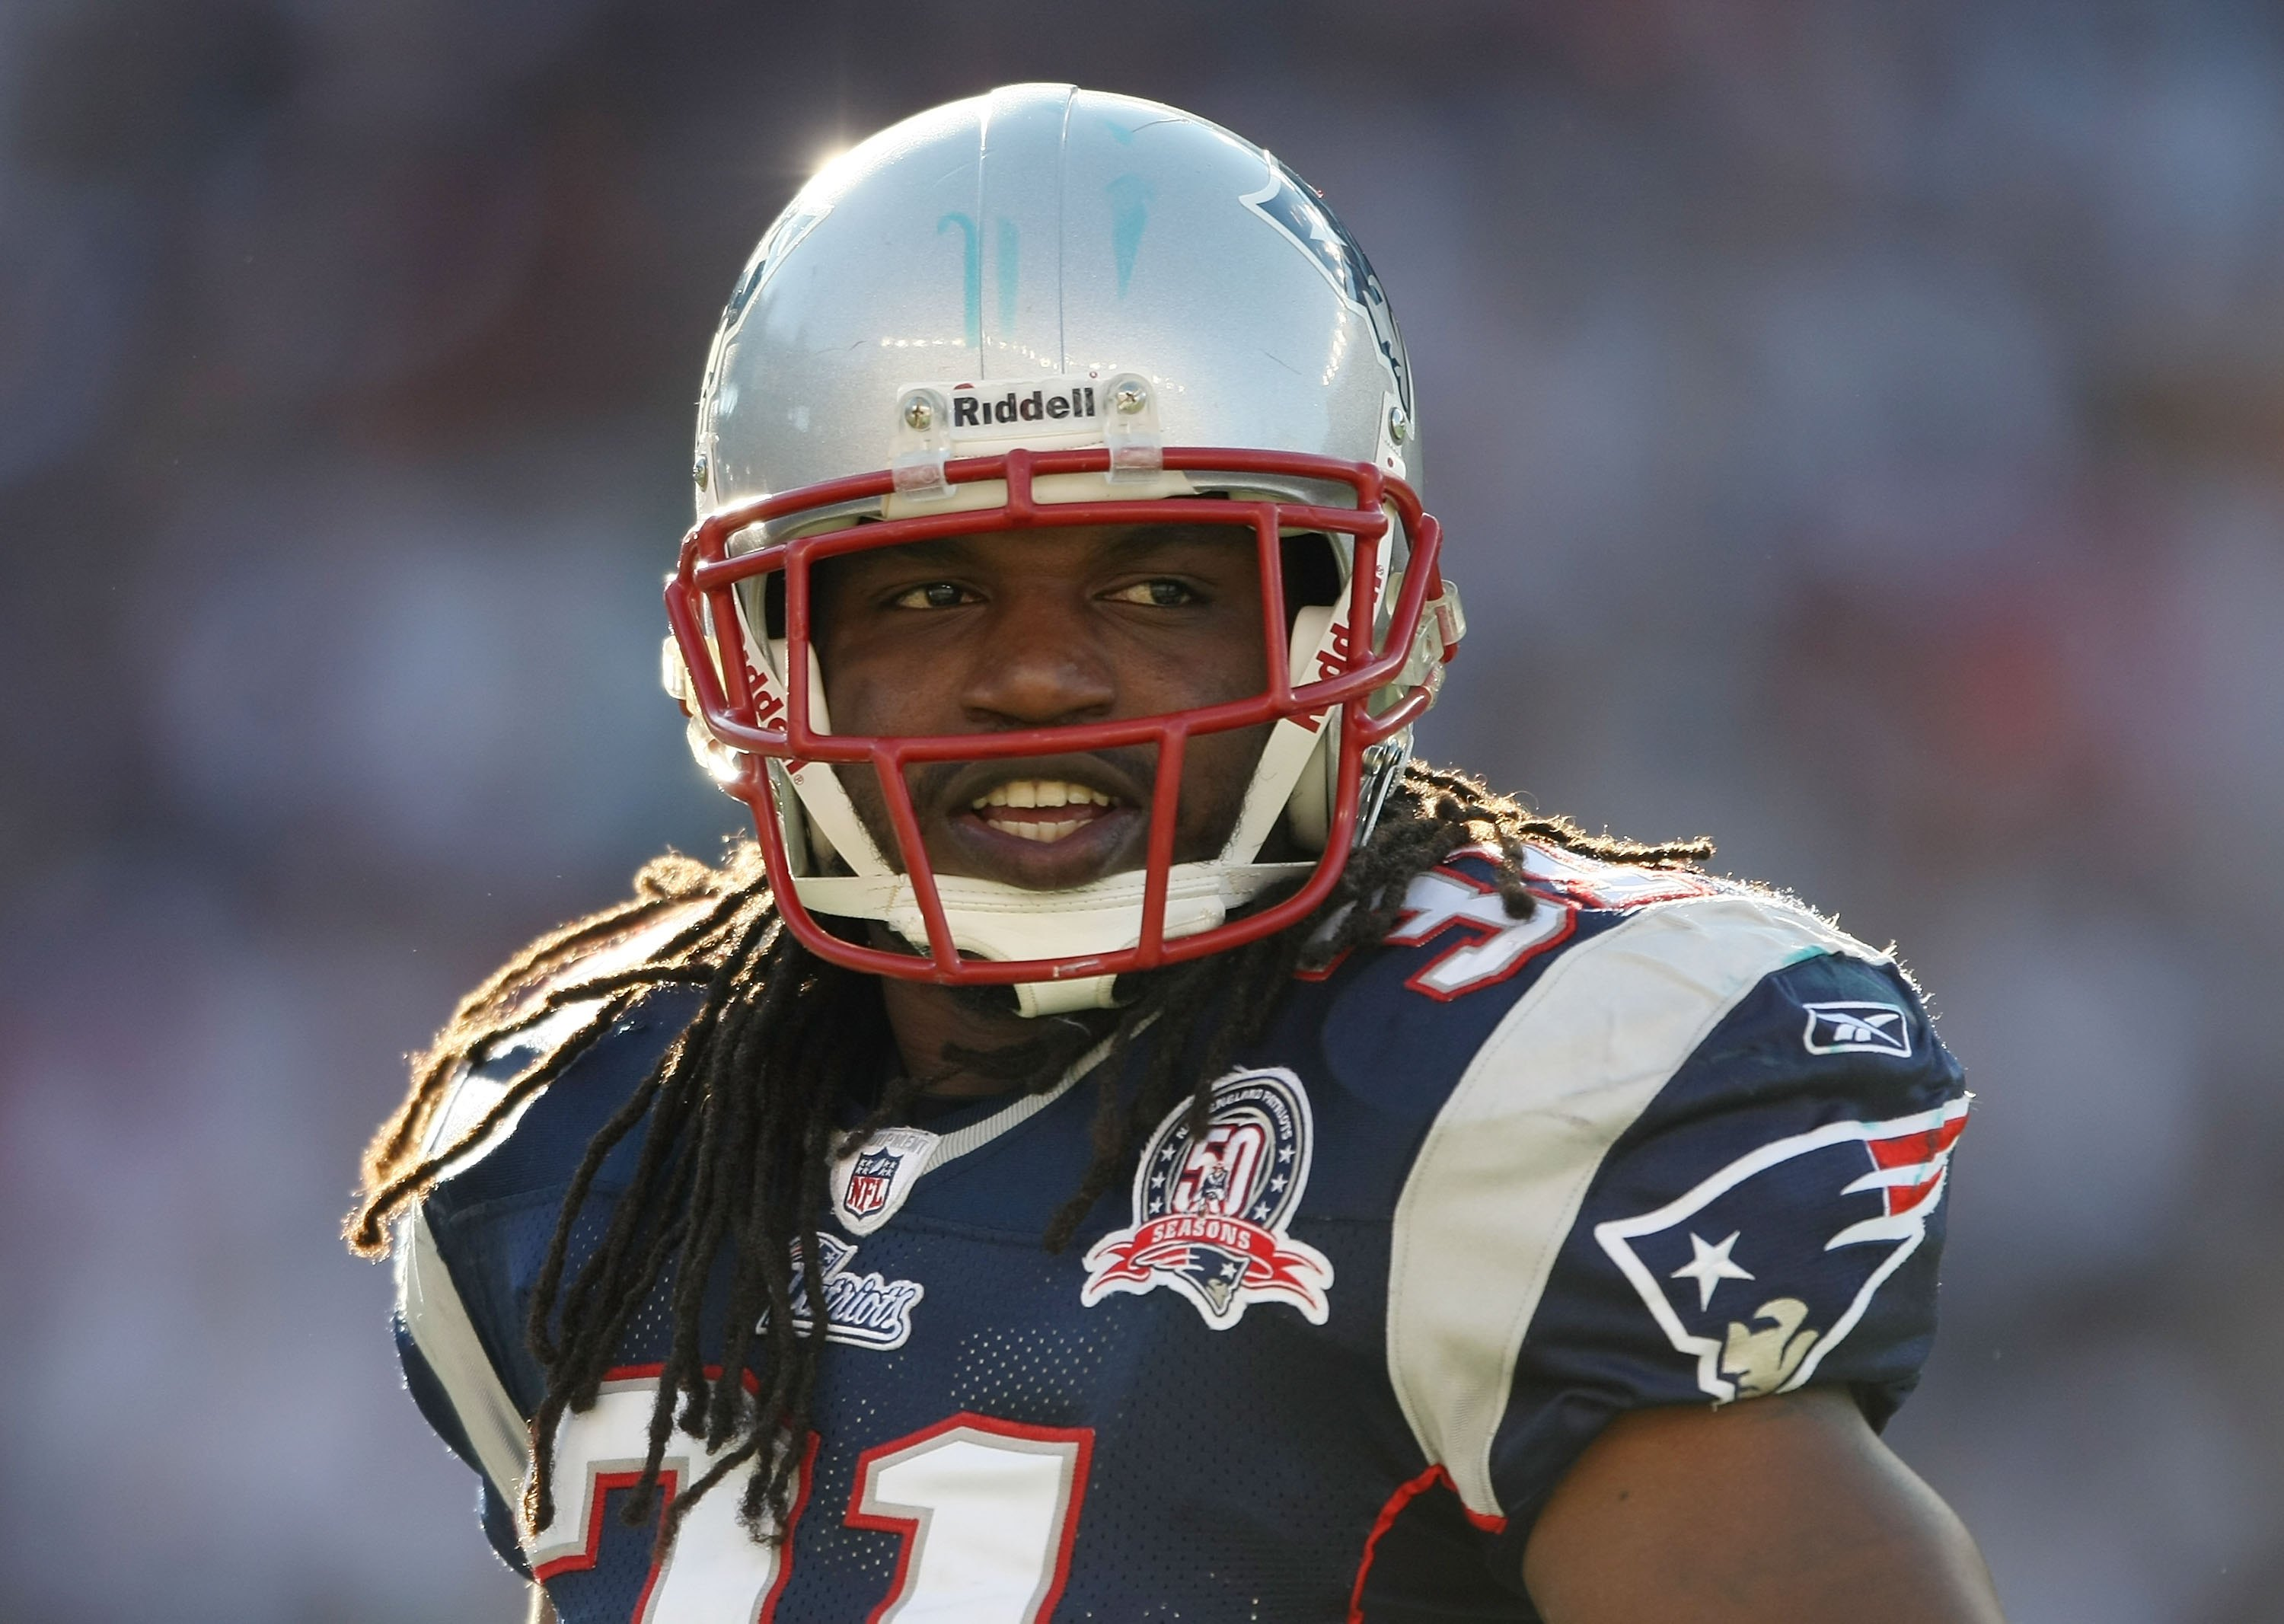 FOXBORO, MA - NOVEMBER 08: Brandon Meriweather #31 of the New England Patriots looks on during the first half the Miami Dolphins on November 8, 2009 at Gillette Stadium in Foxboro, Massachusetts.  (Photo by Elsa/Getty Images)